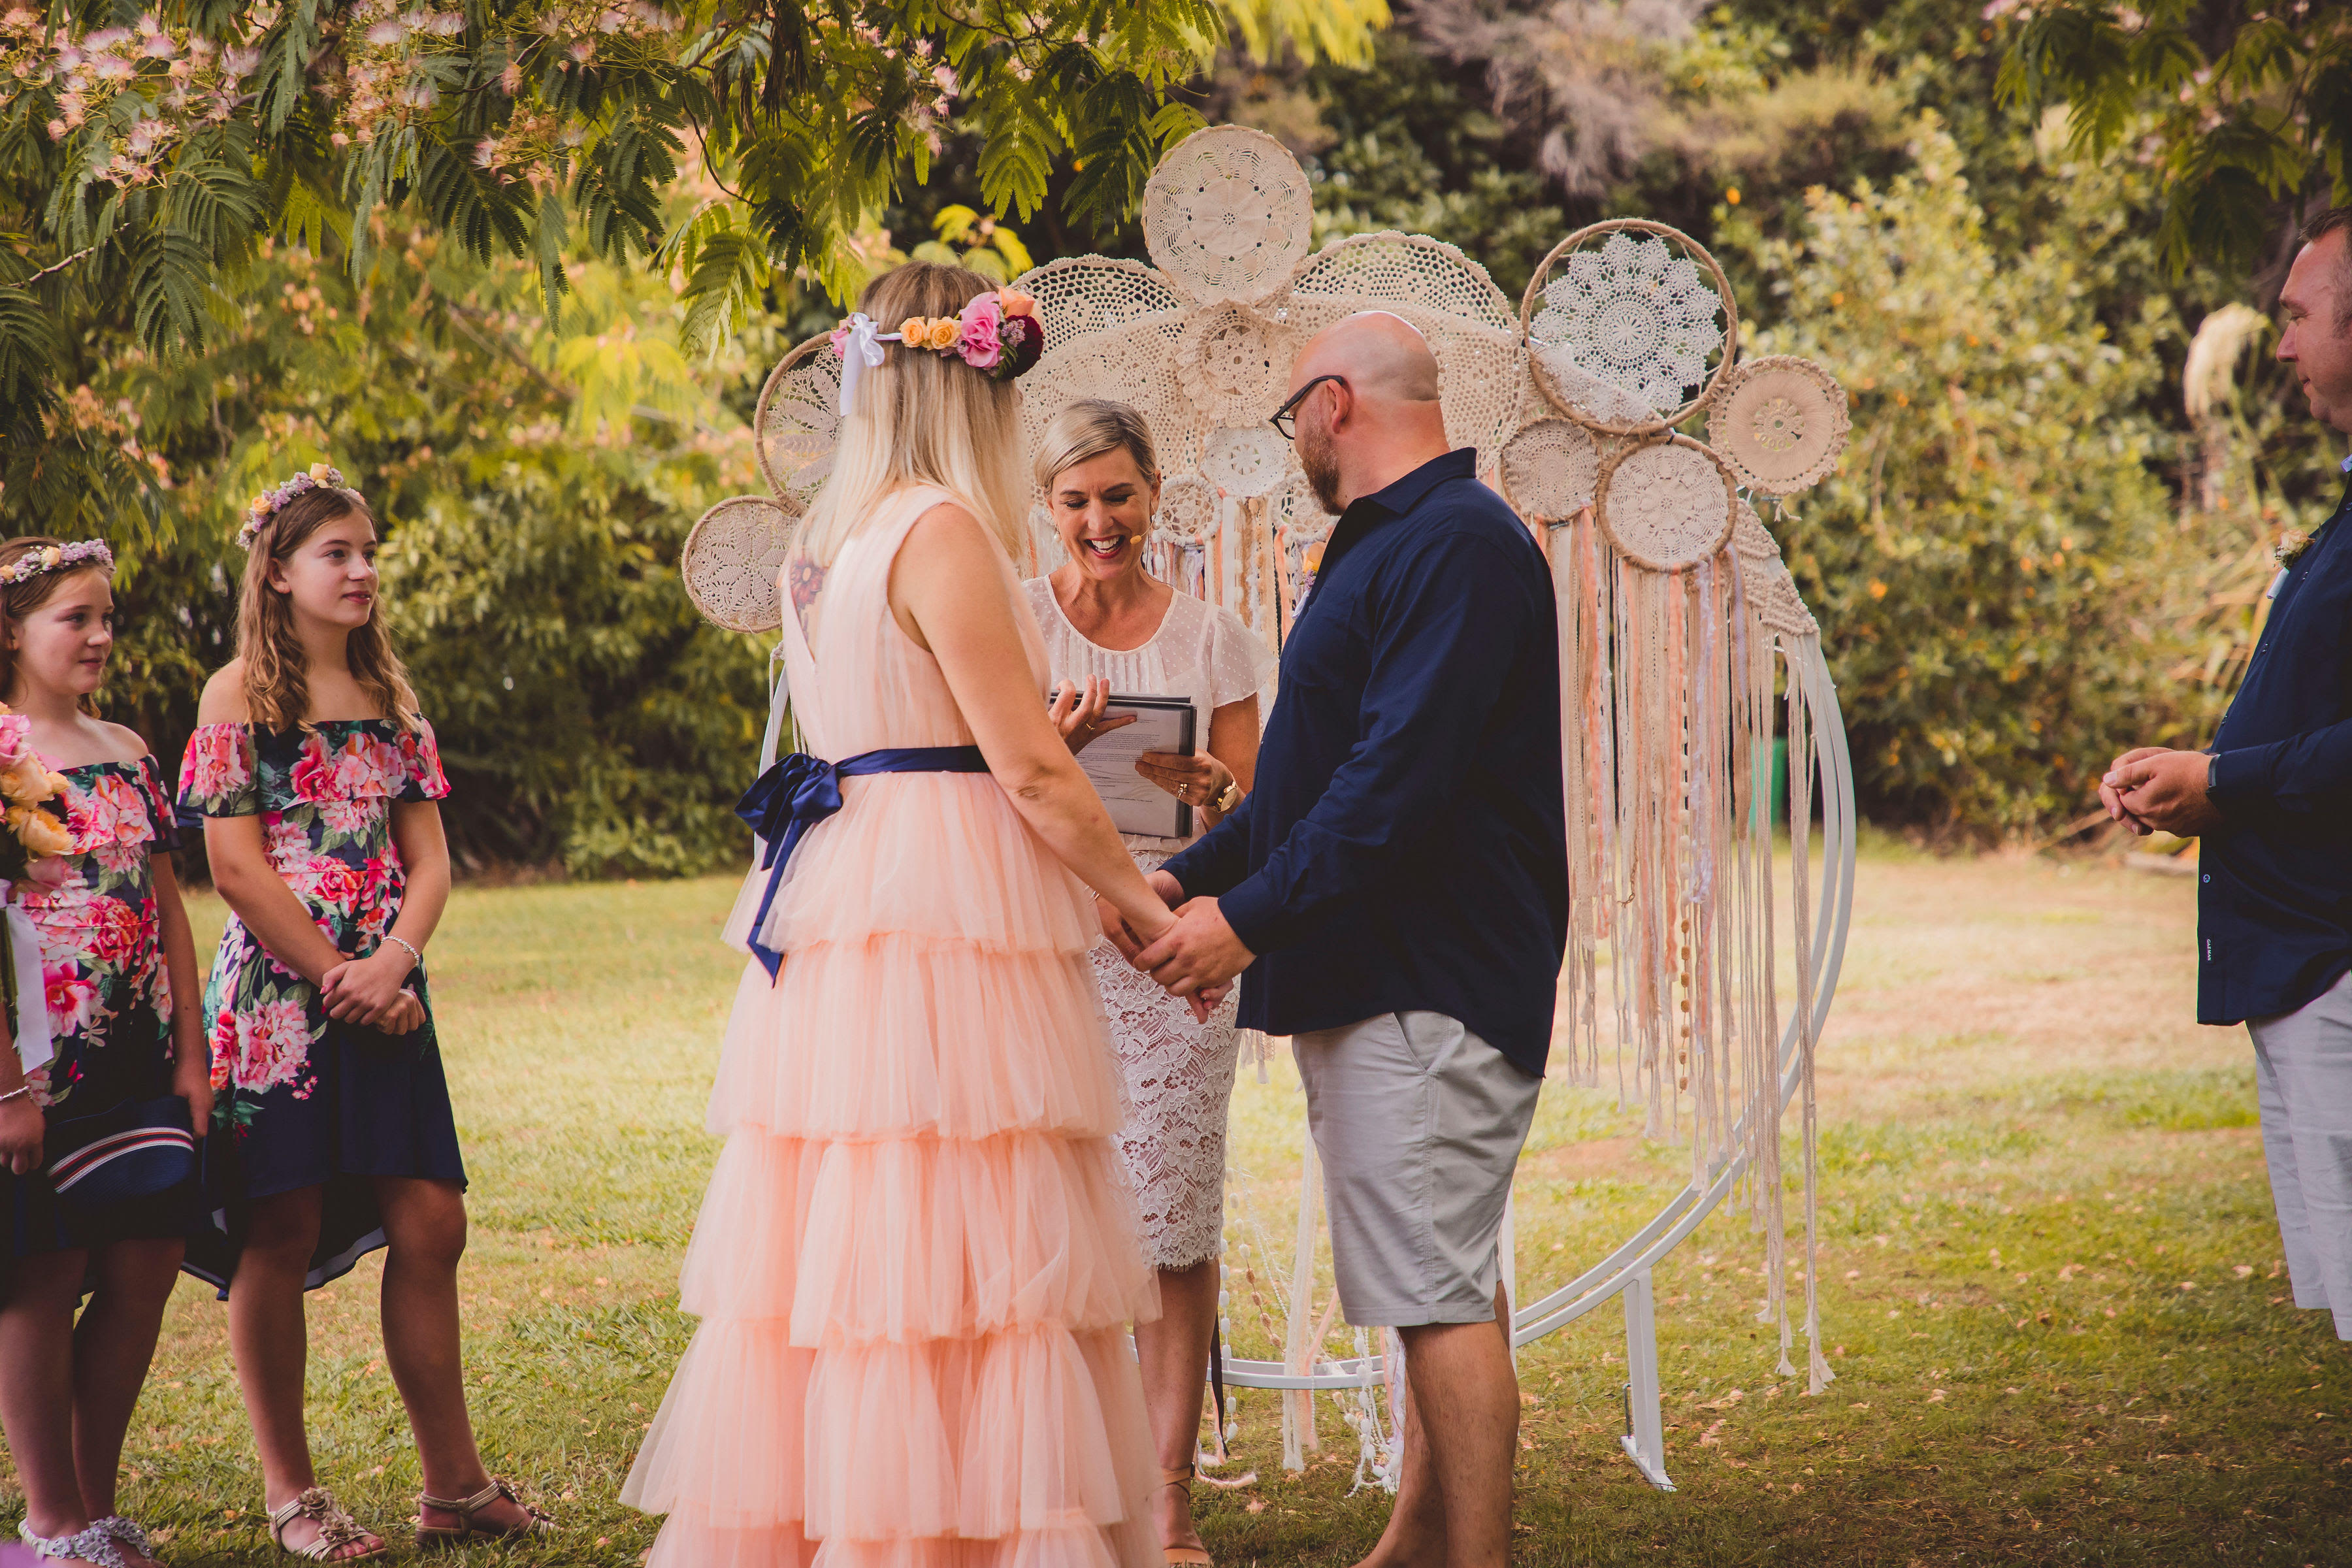 Shirley and Andrews wedding in Nelson - celebrant Rachael Schepers